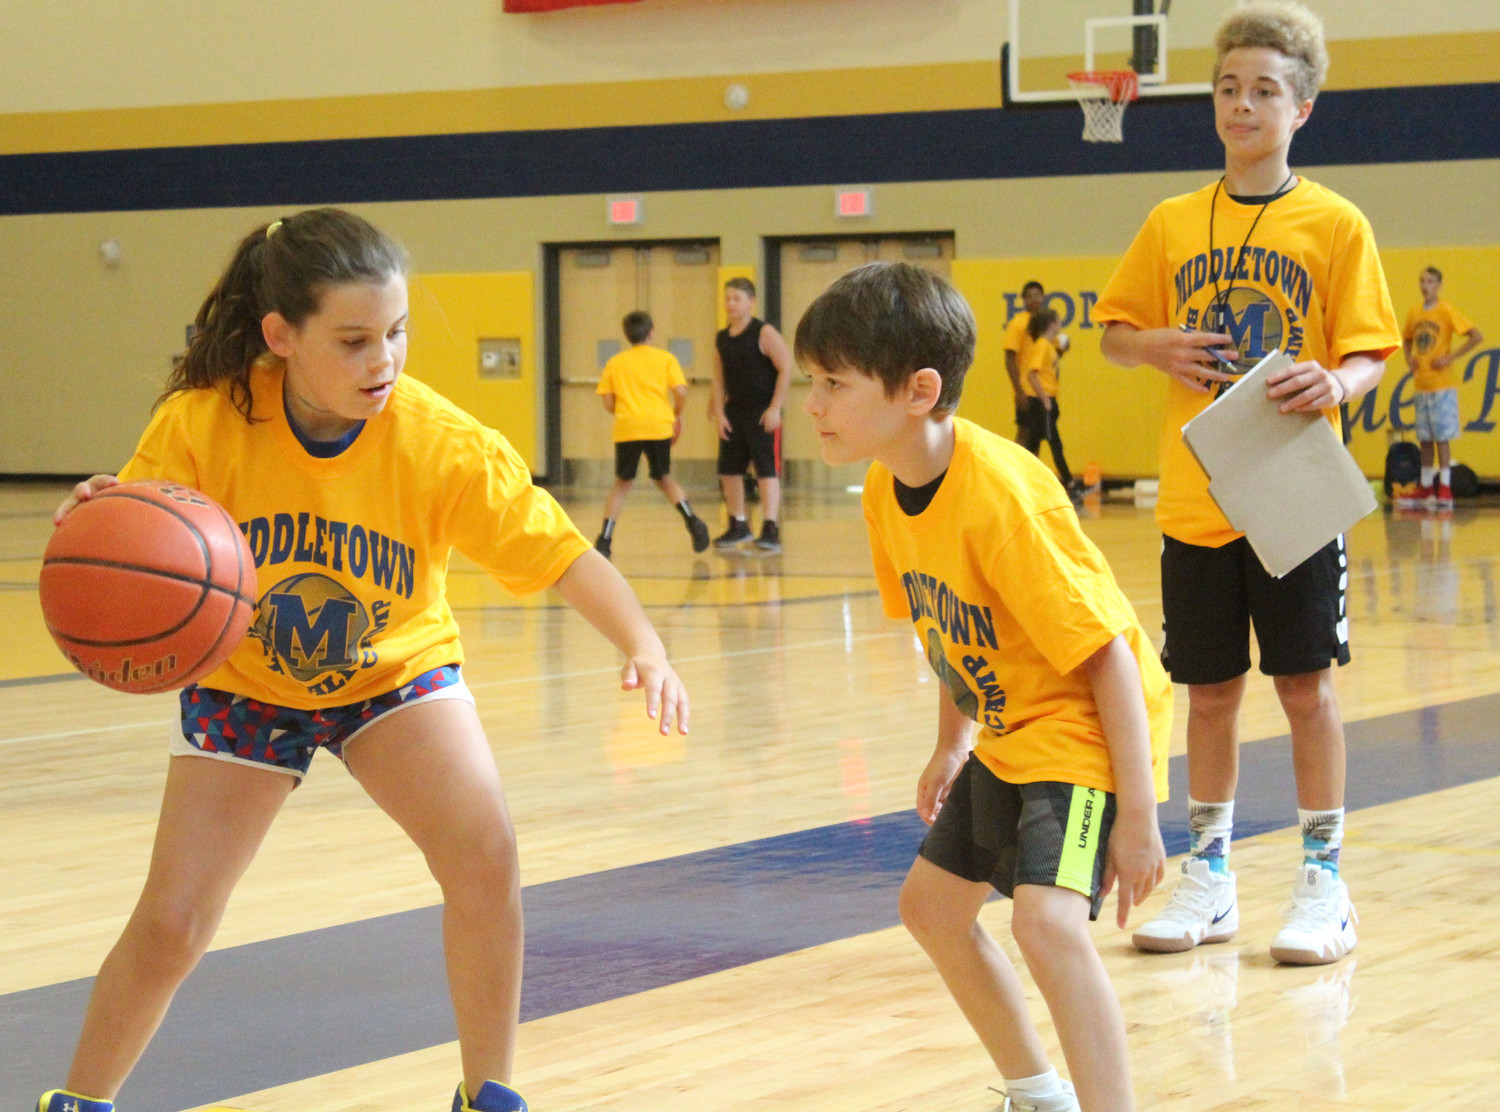 Hayden DeFilippo squares off against Brody Keating during basketball camp on July 12.